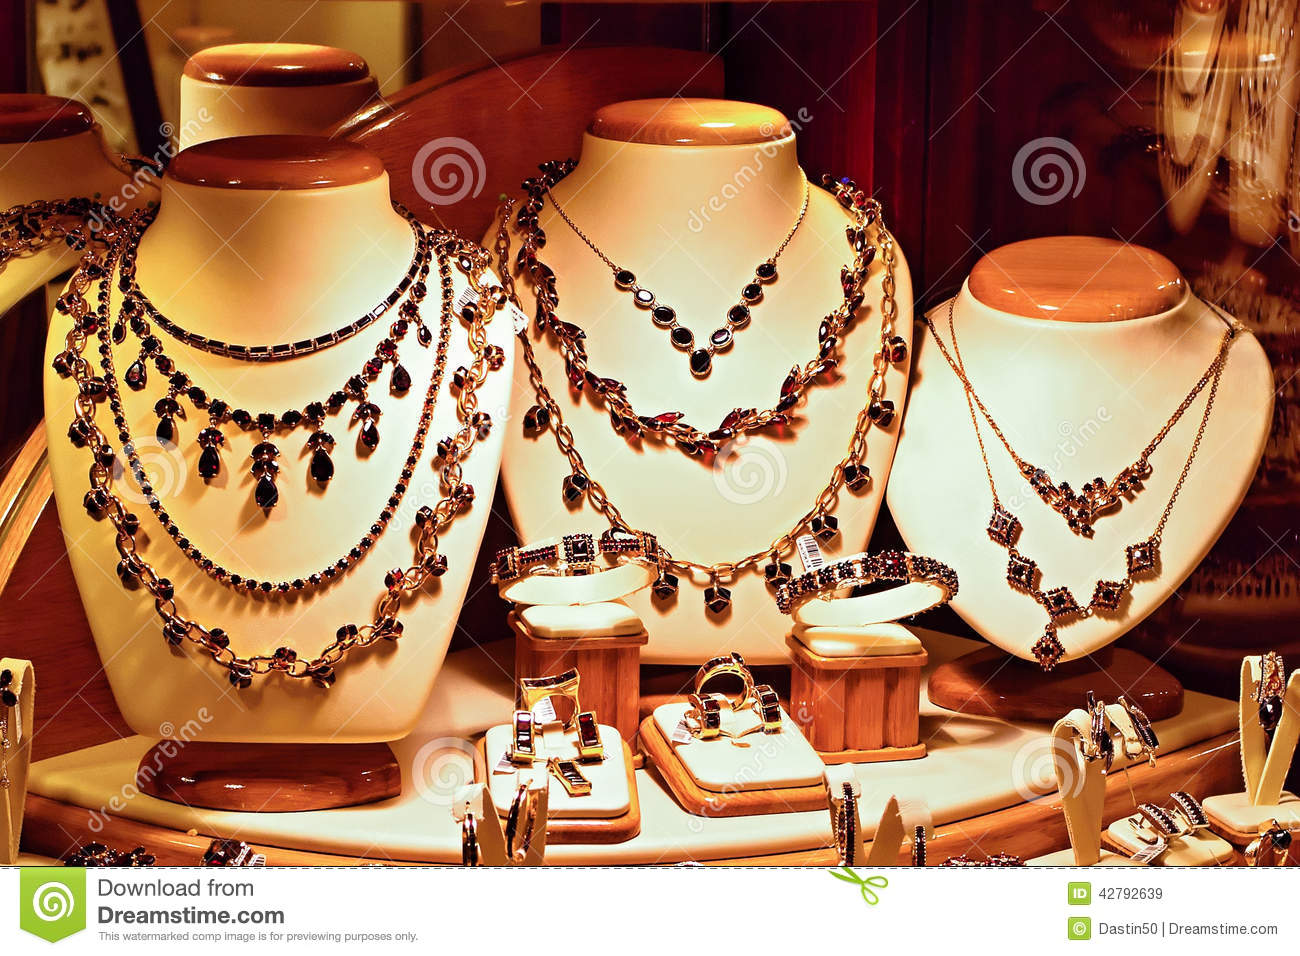 Gold Jewelry With Bohemian Garnets Stock Image Image of retail